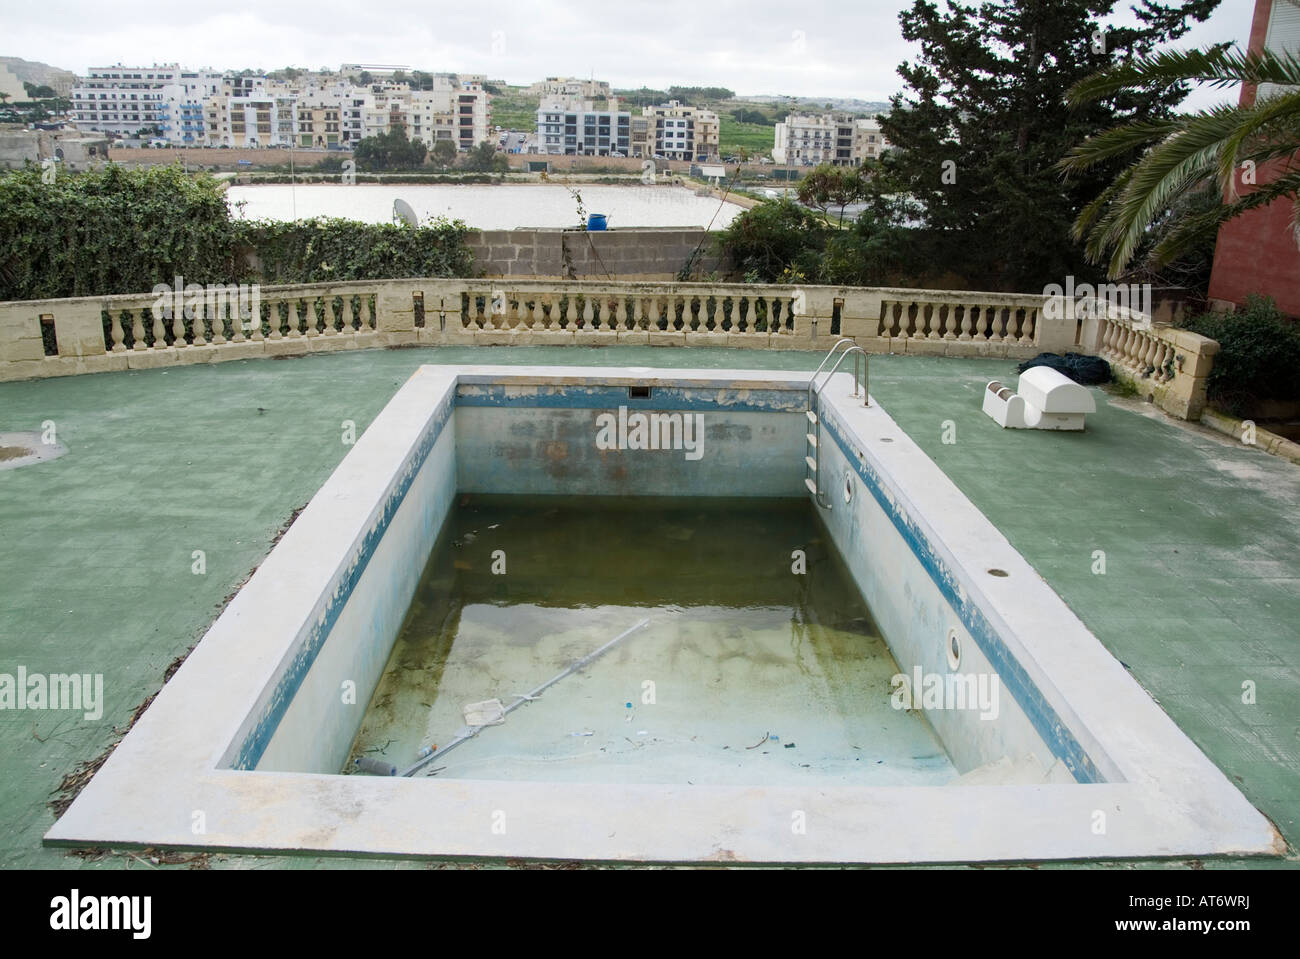 Zwembad Bed Empty Swimming Pool Bad Hotel Rough Dirty Area Stock Photo